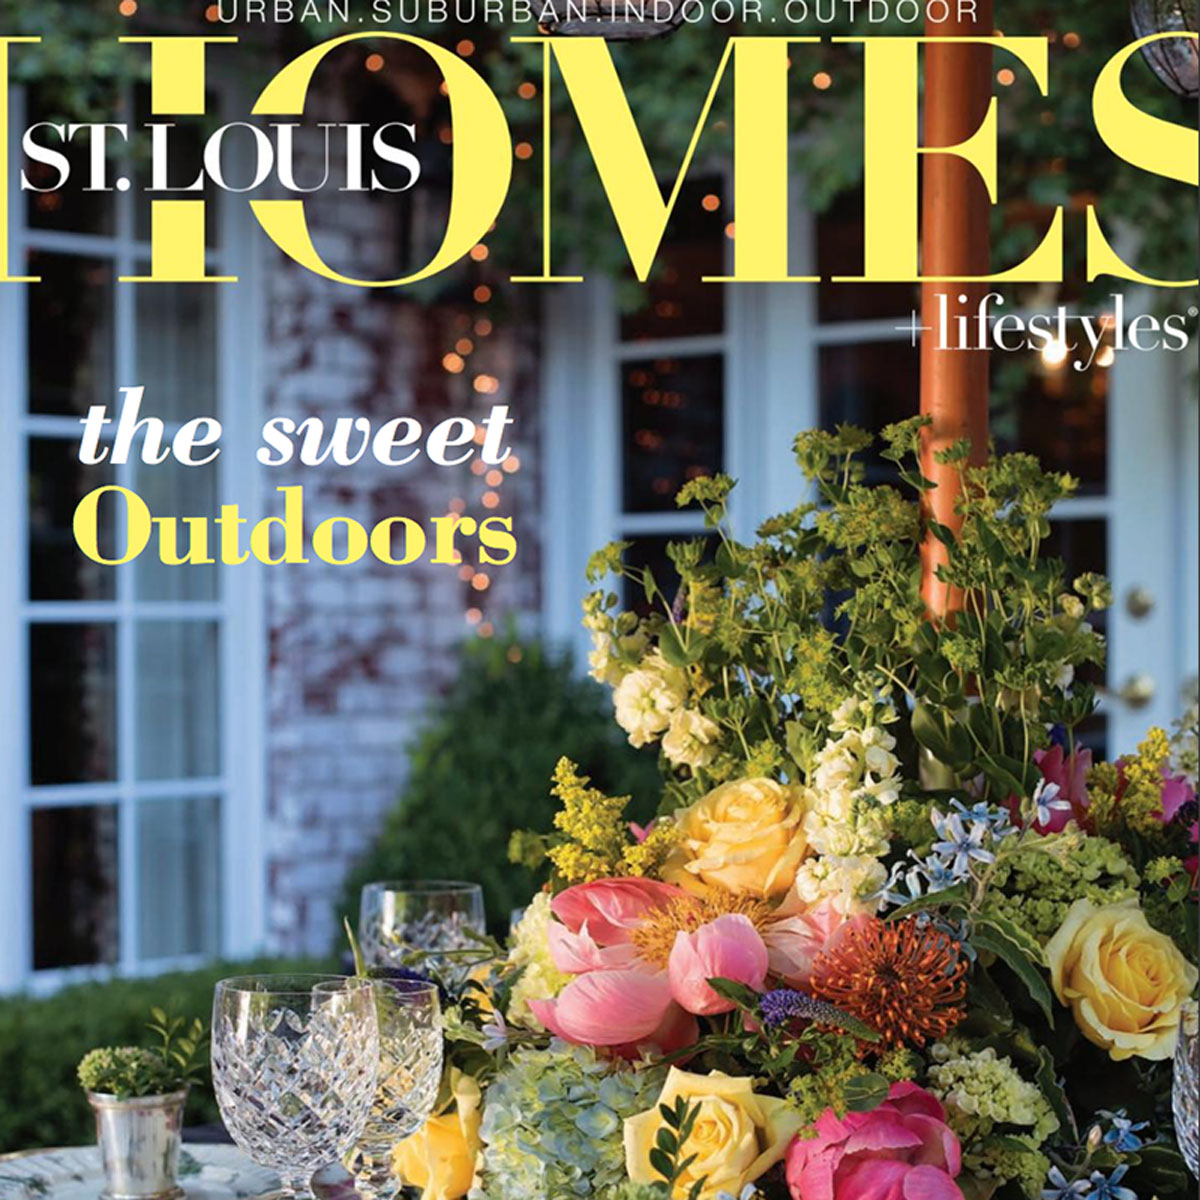 St. Louis Home & Lifestyles Magazine June 2018